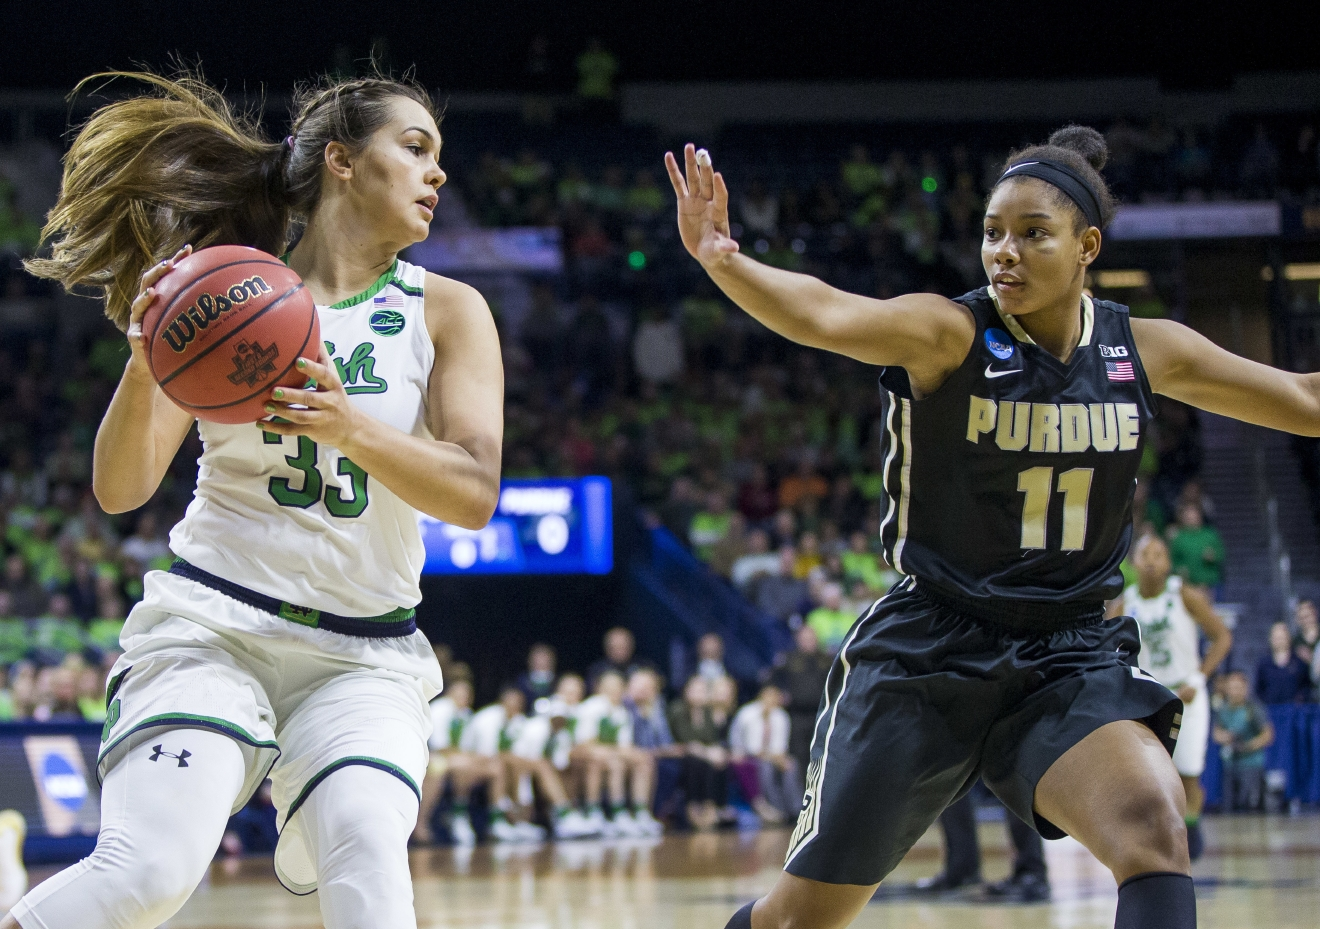 Notre Dame's Kathryn Westbeld (33) looks to pass around Purdue's Dominique Oden (11) during a second-round game in the NCAA women's college basketball tournament, Sunday, March 19, 2017, in South Bend, Ind. (AP Photo/Robert Franklin)